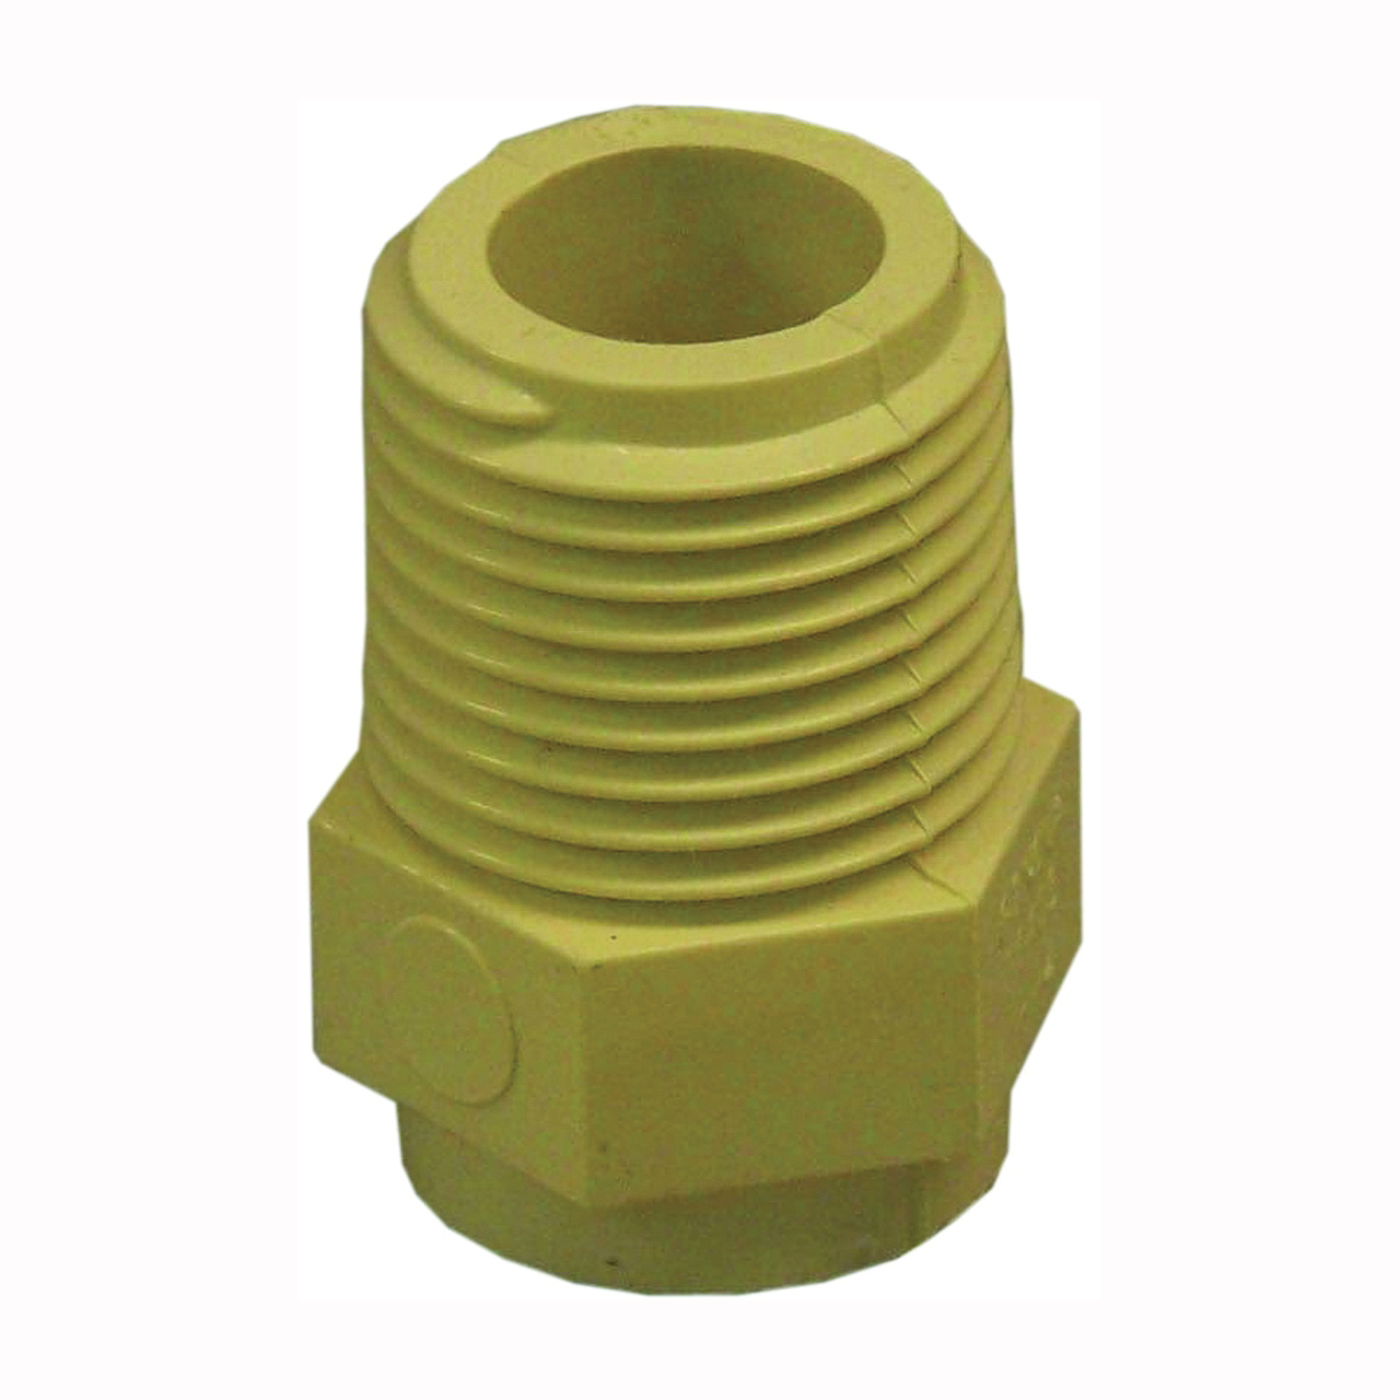 Picture of GENOVA 500 50405 Male Adapter, 1/2 in, MIP x Slip, CPVC, 100 psi Pressure